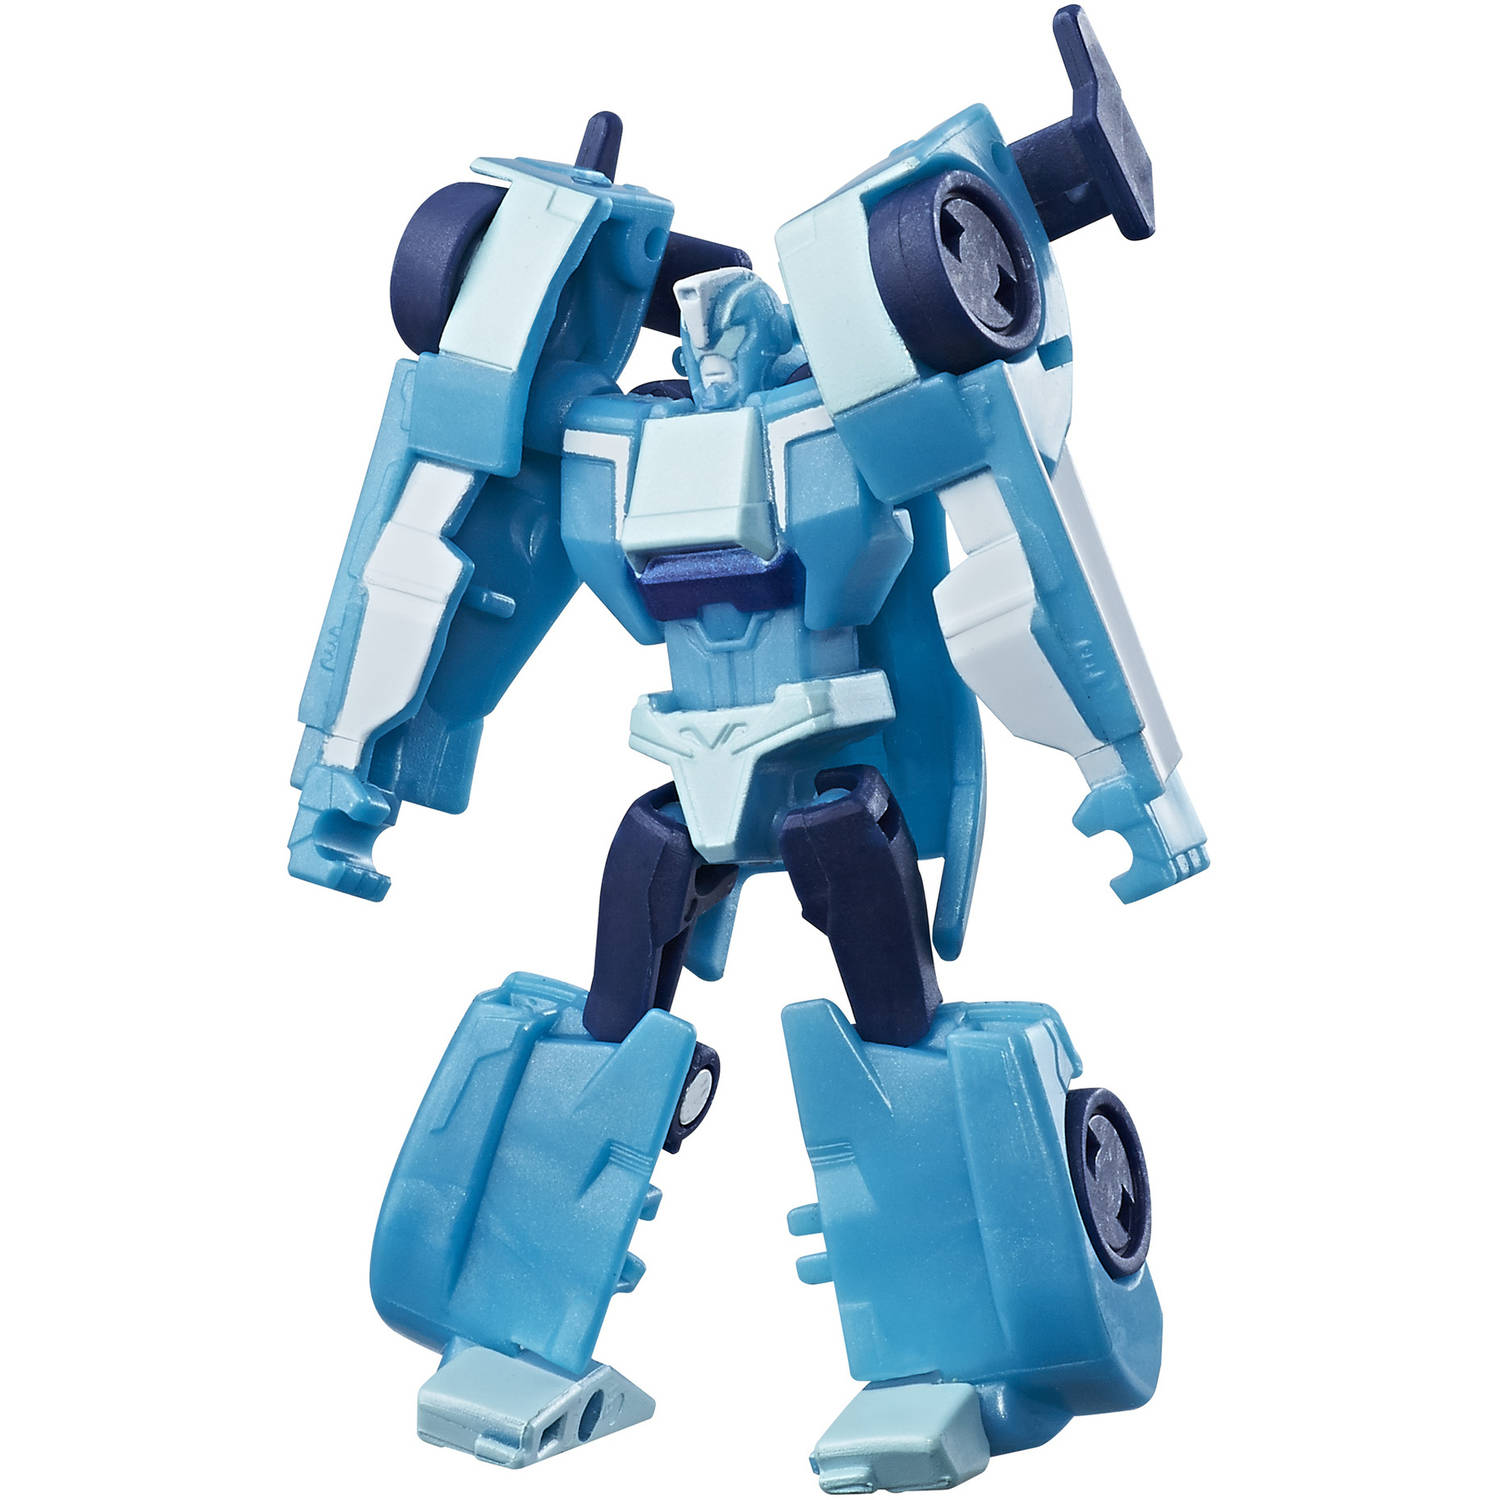 Transformers: Robots in Disguise Combiner Force Legion Class Blurr by Hasbro